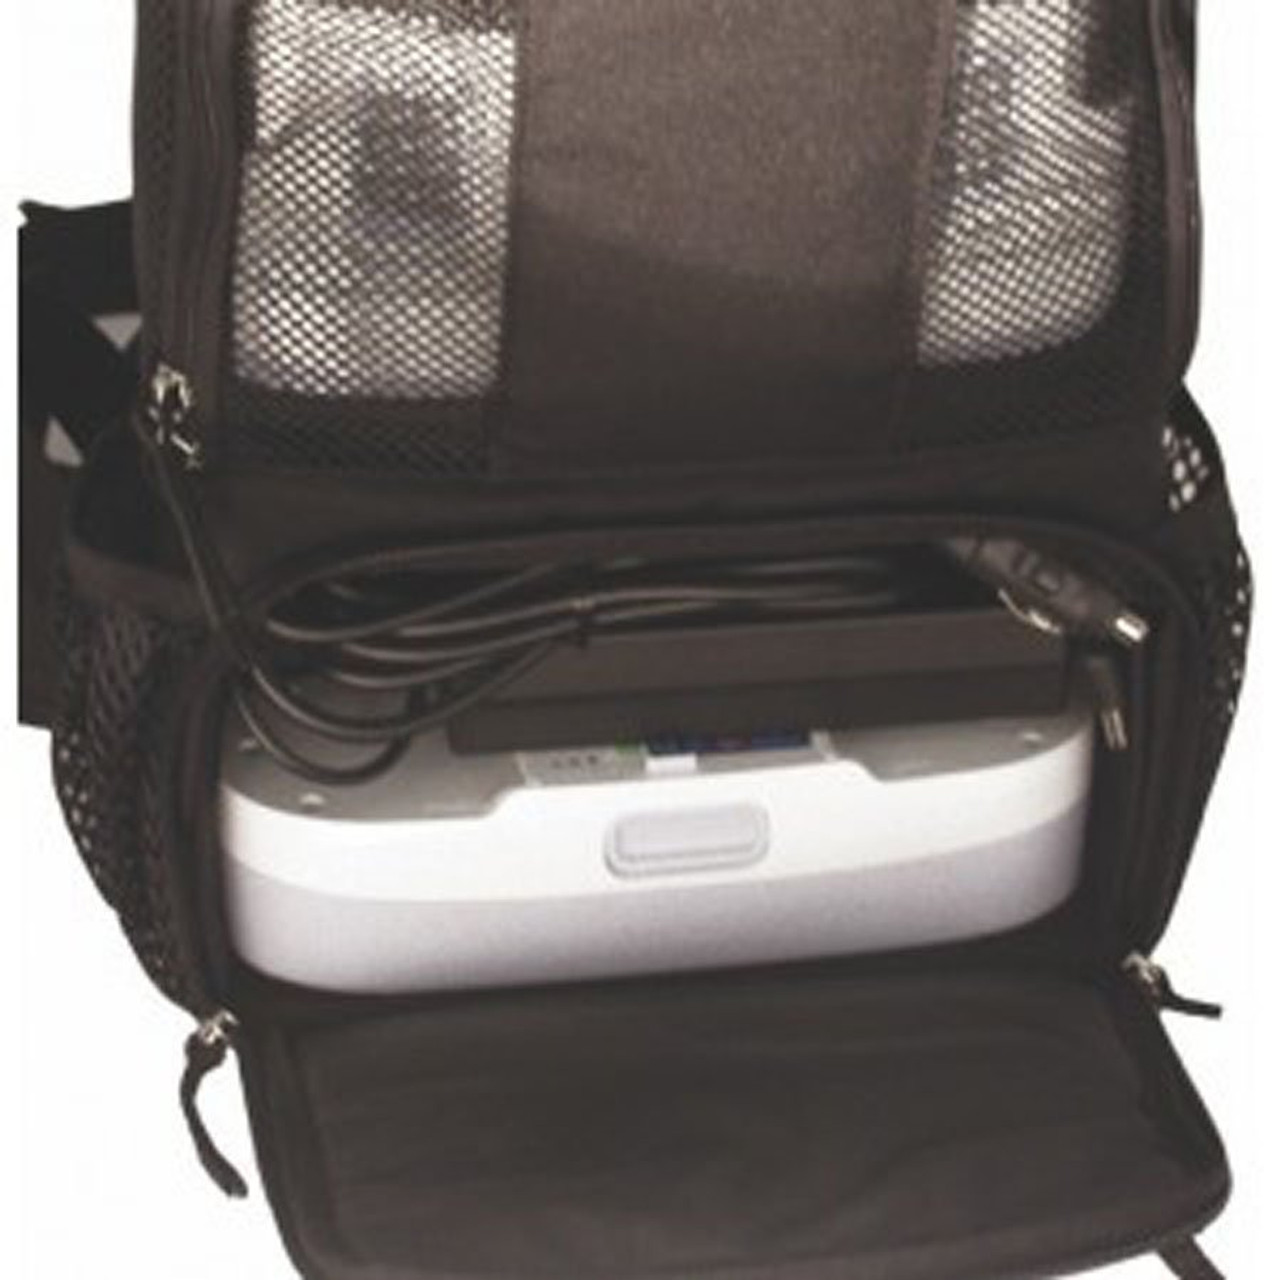 1947905d0 Inogen One G3 Portable Oxygen Concentrator Backpack (CA-350)